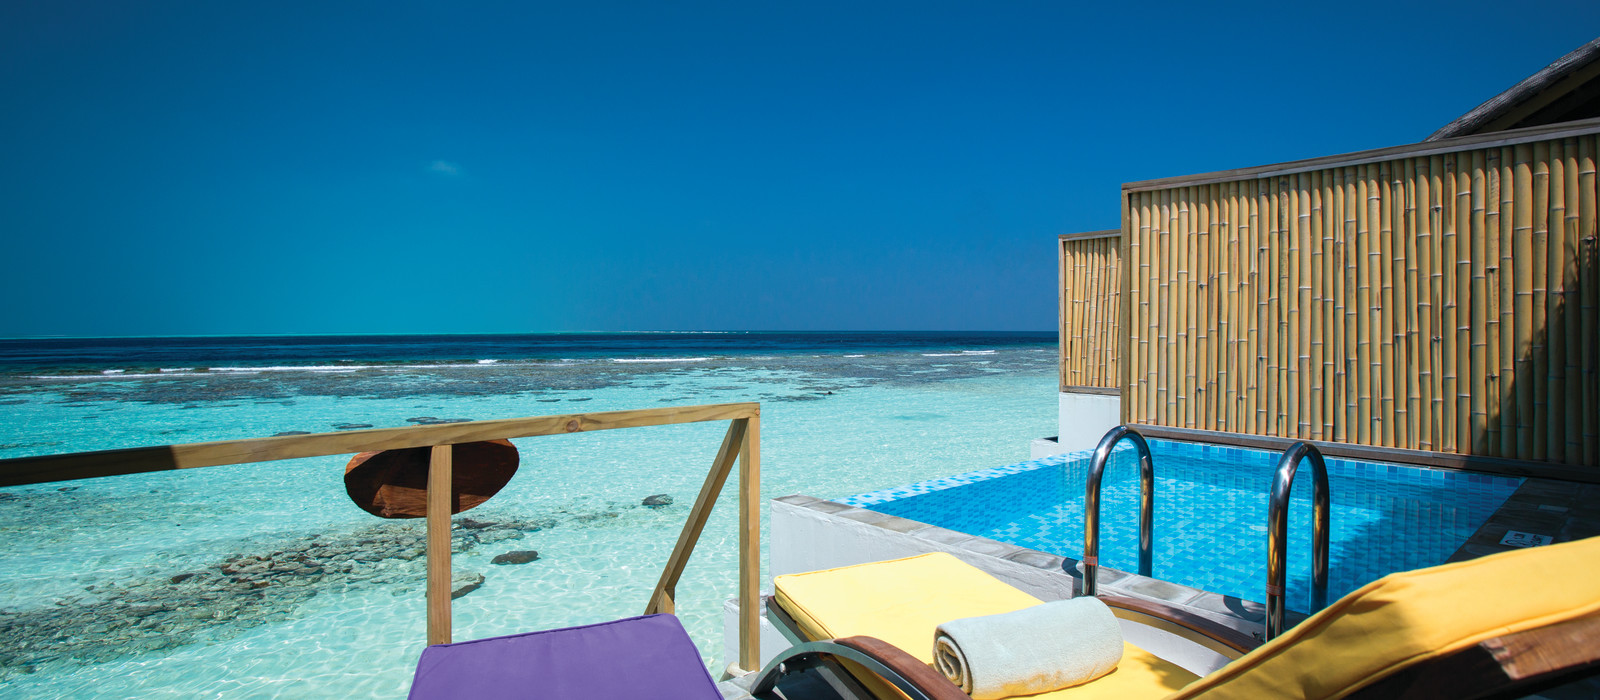 Hotel OBLU by Atmosphere at Helegeli Maldives